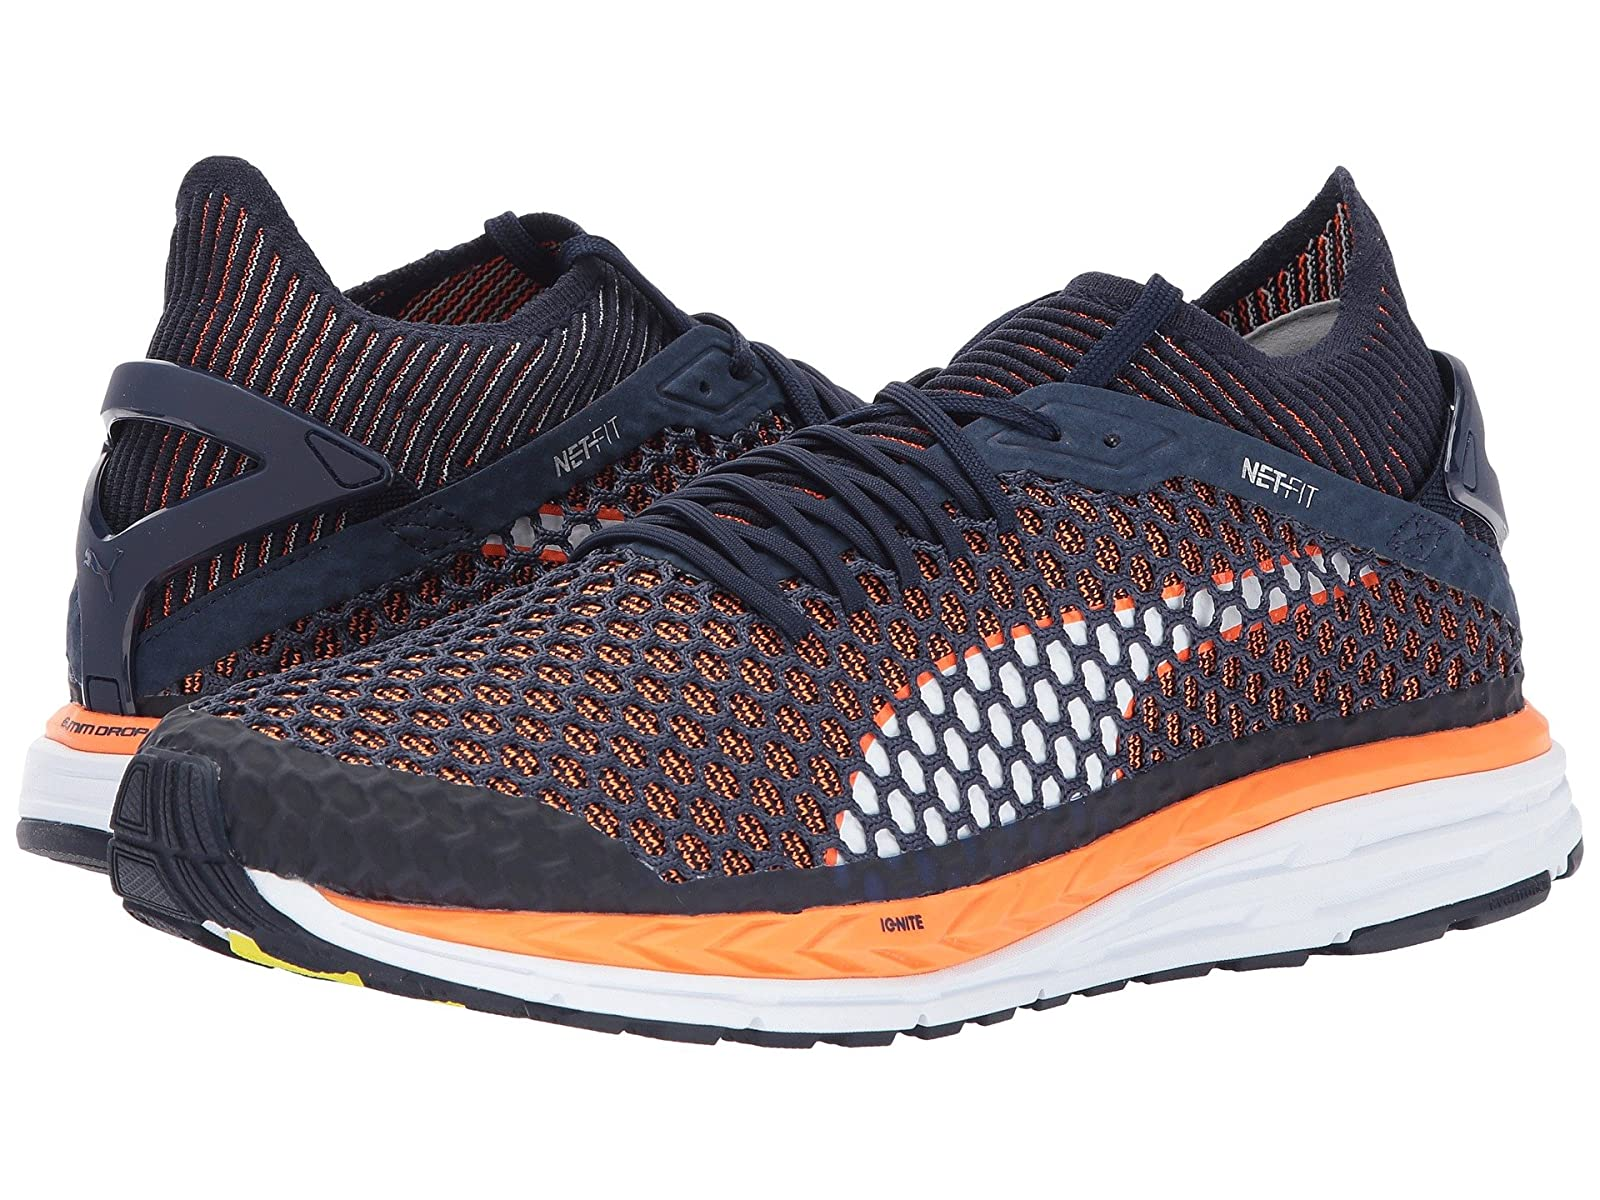 PUMA Speed Ignite NetfitCheap and distinctive eye-catching shoes